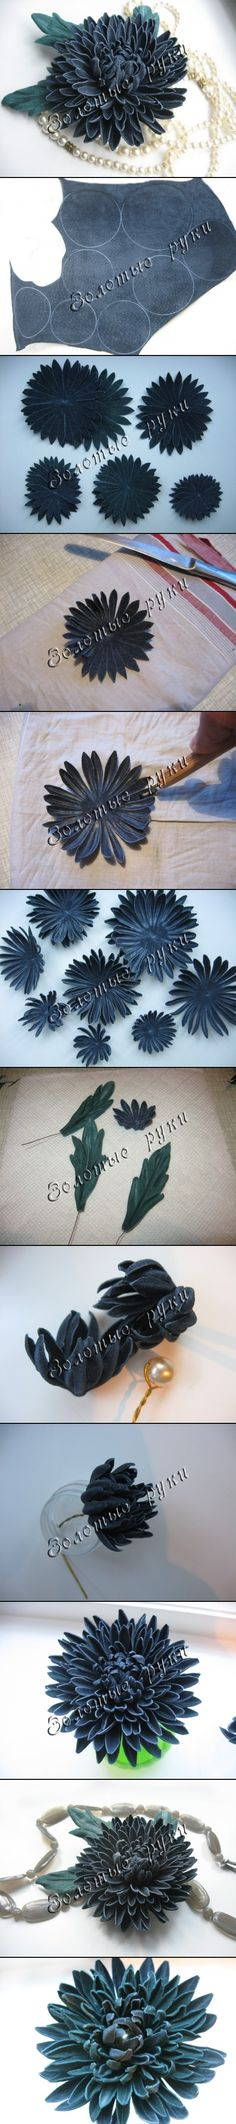 Making Fabric Flowers Zara Bukhari S Collection Of 200 Fabric Flowers Ideas